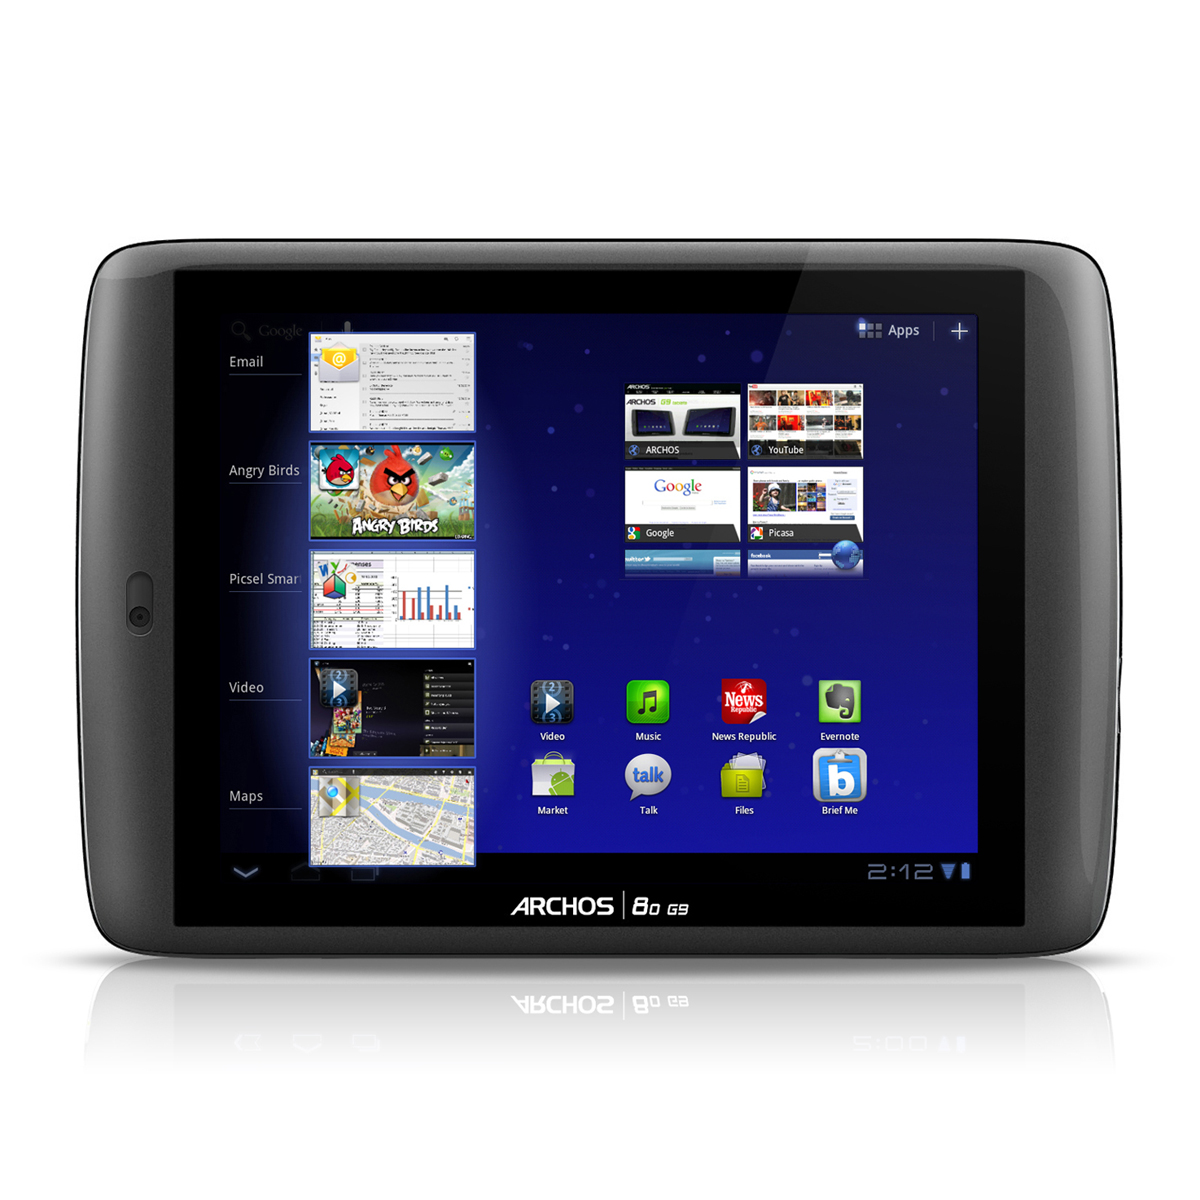 "Tablette tactile Archos 80 G9 Turbo 250 Go Tablette Internet - OMAP 4 Smart multi-core 1.2 GHz 250 Go 8"" LCD tactile Wi-Fi N/Bluetooth Webcam Android 3.2"